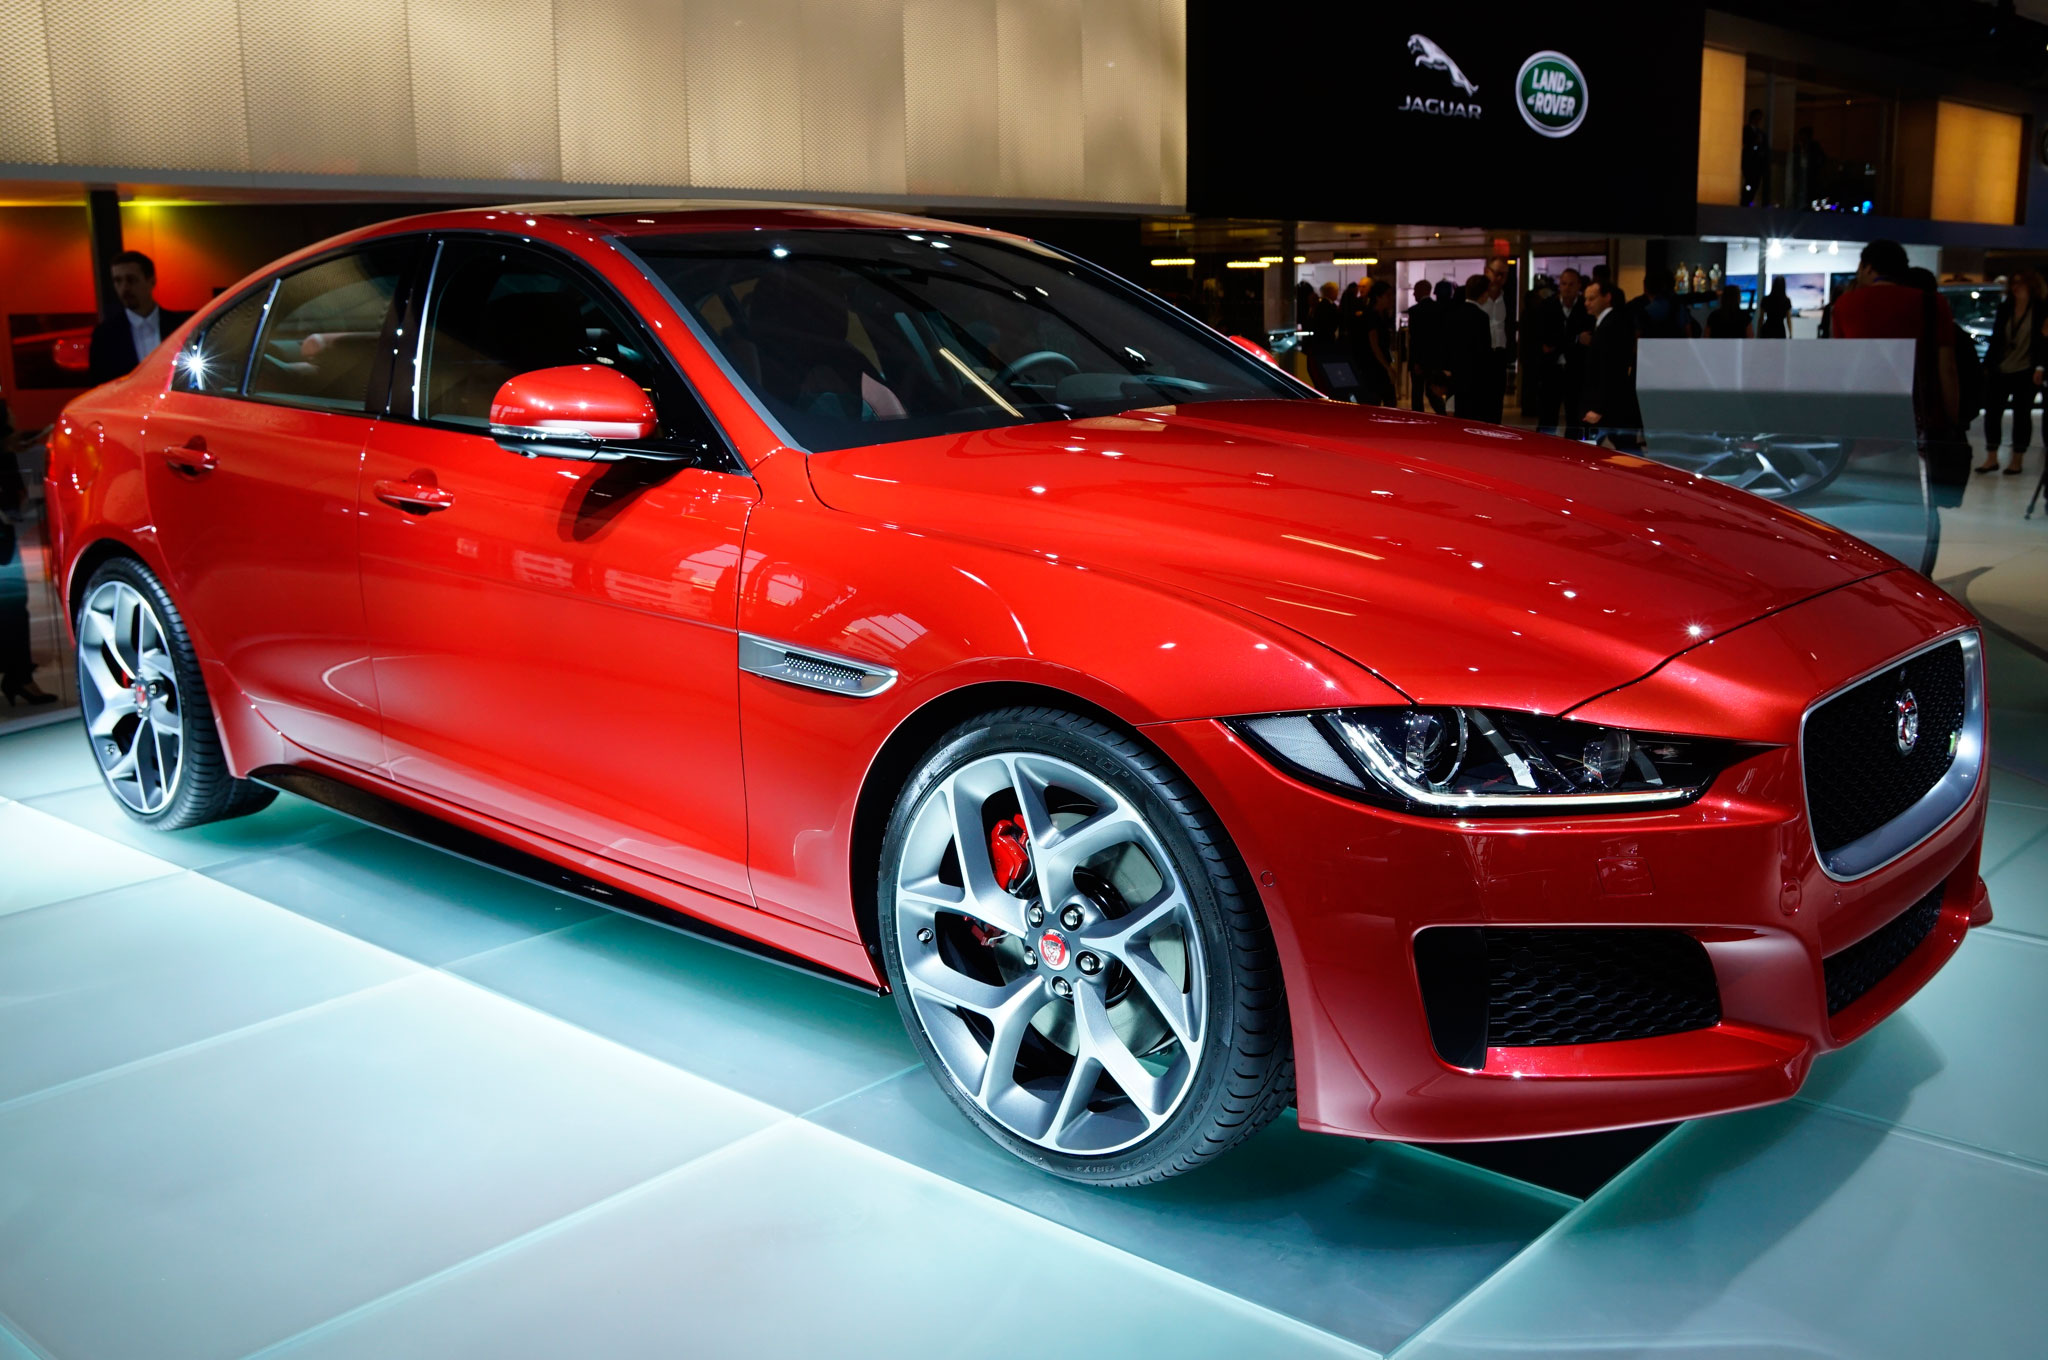 2016 Jaguar Xe Front Side Details (Photo 5 of 12)